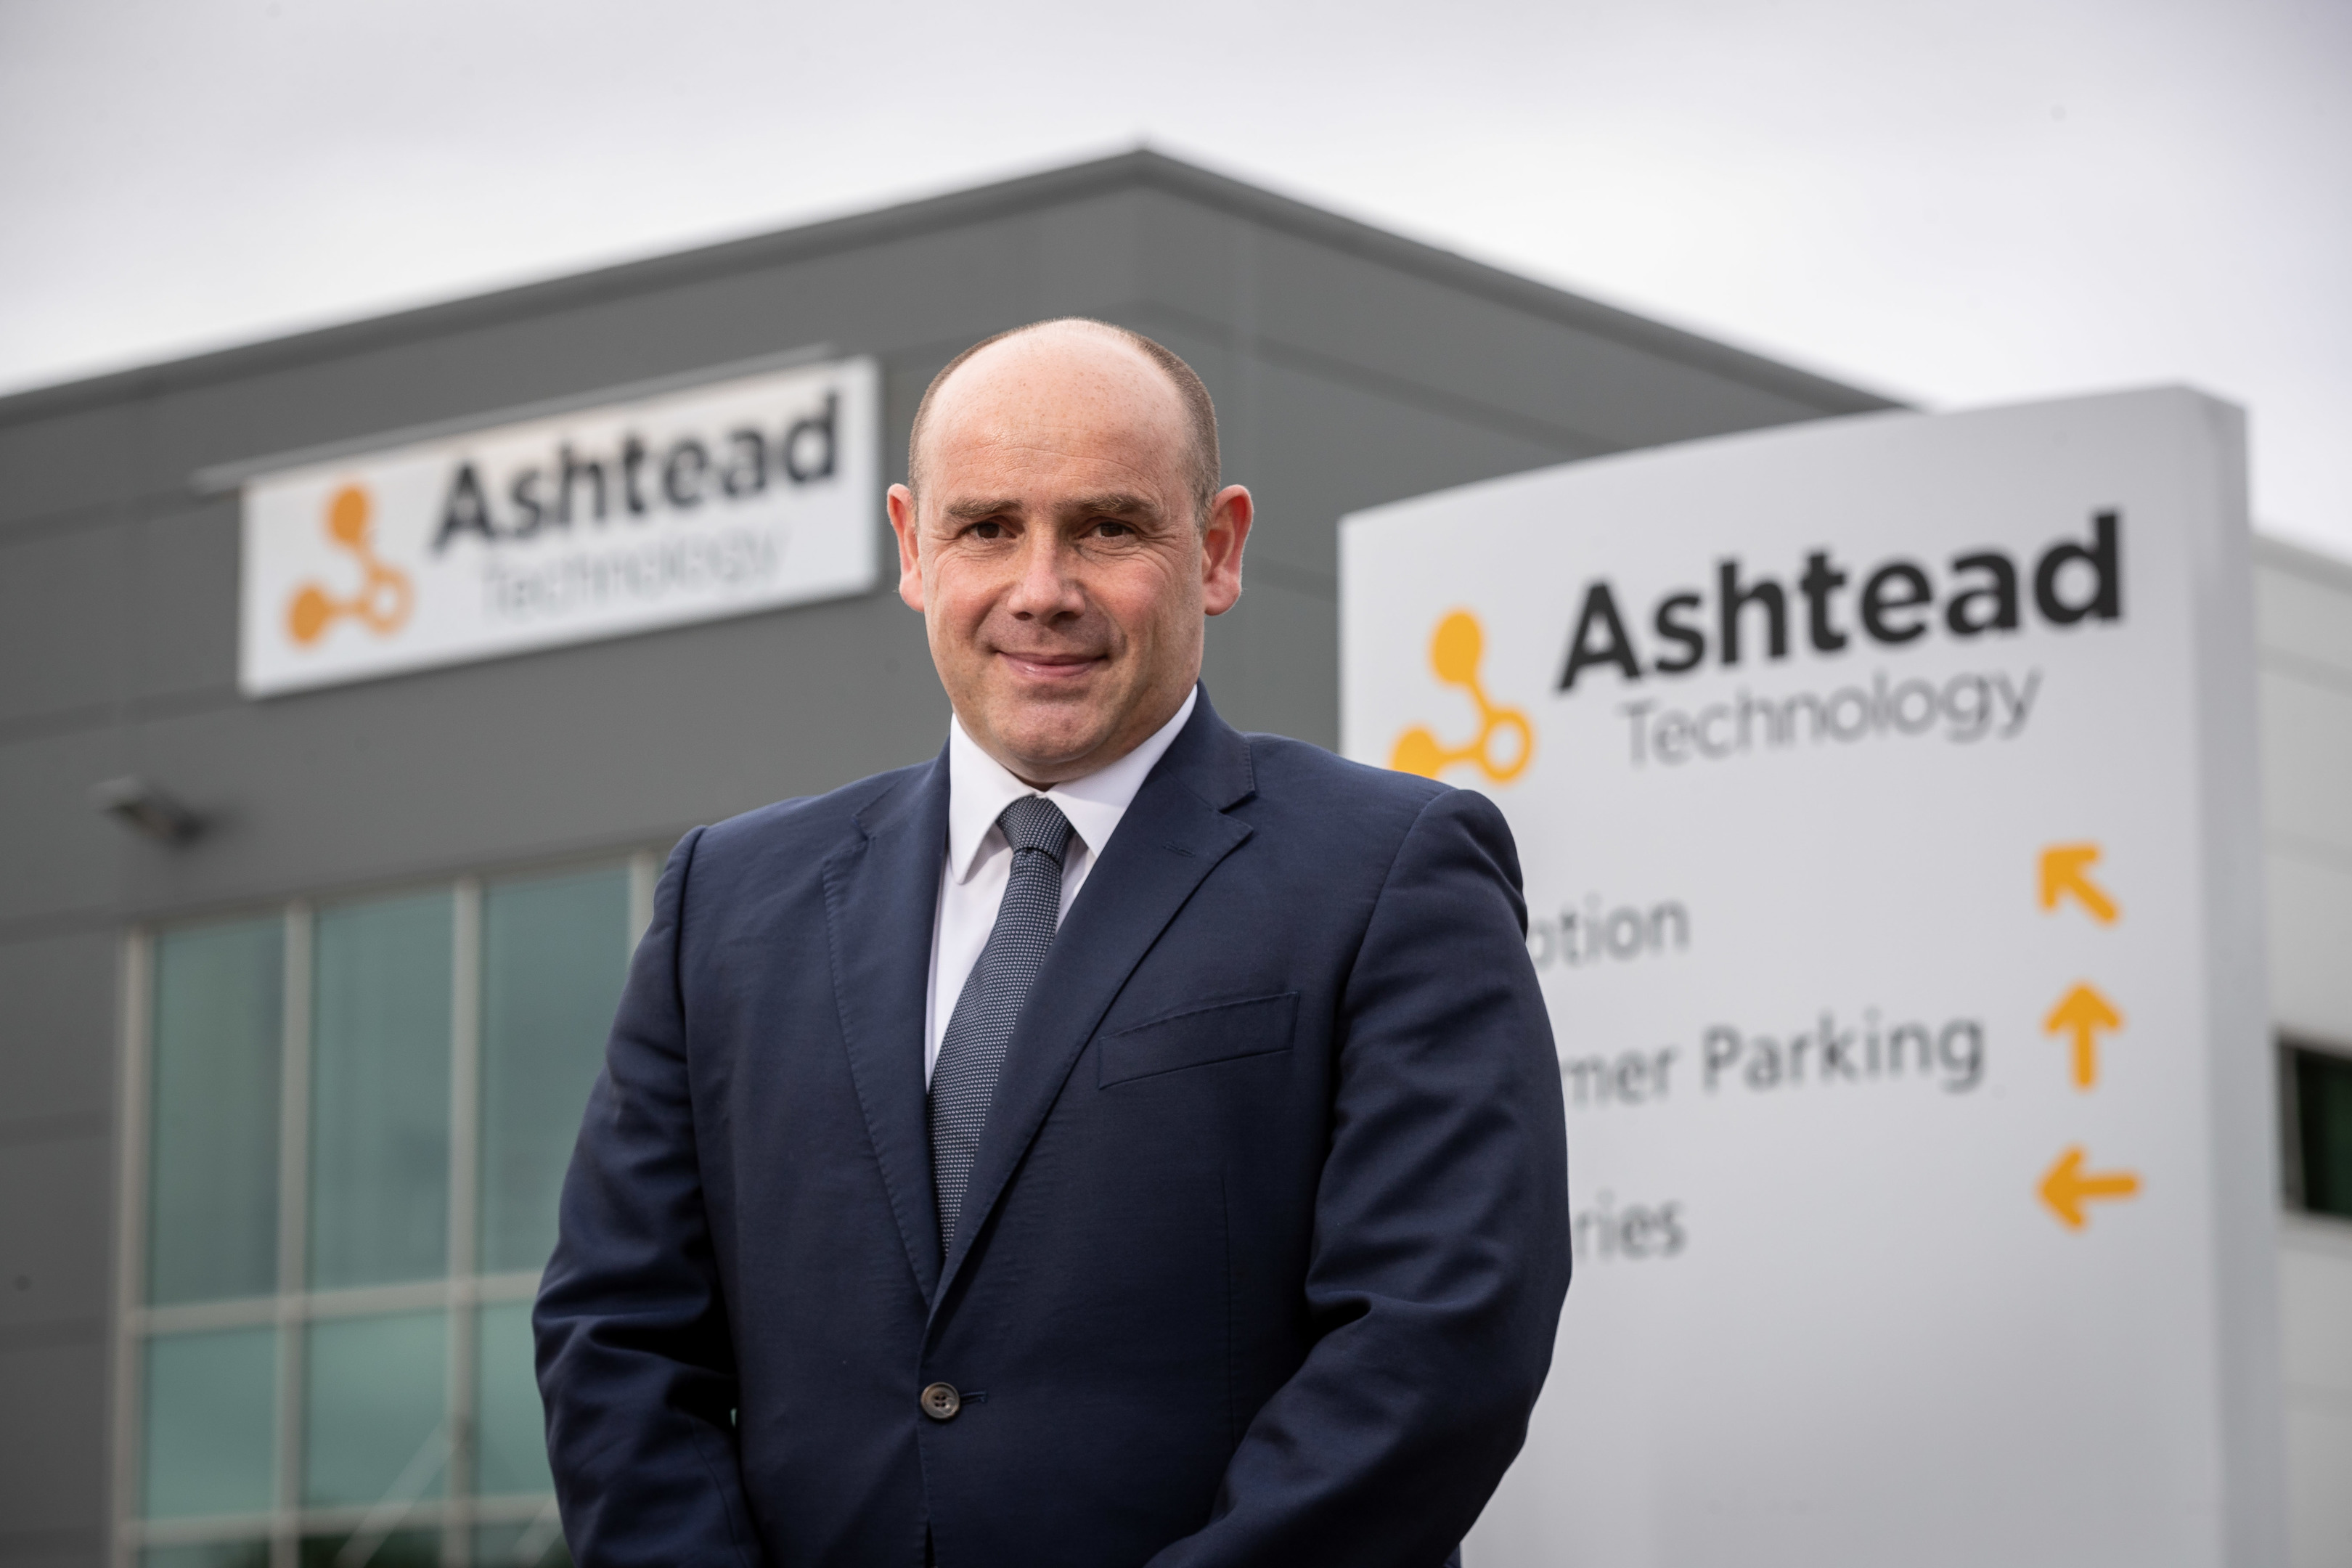 Stephen Steel, new director at Ashtead Technologies.